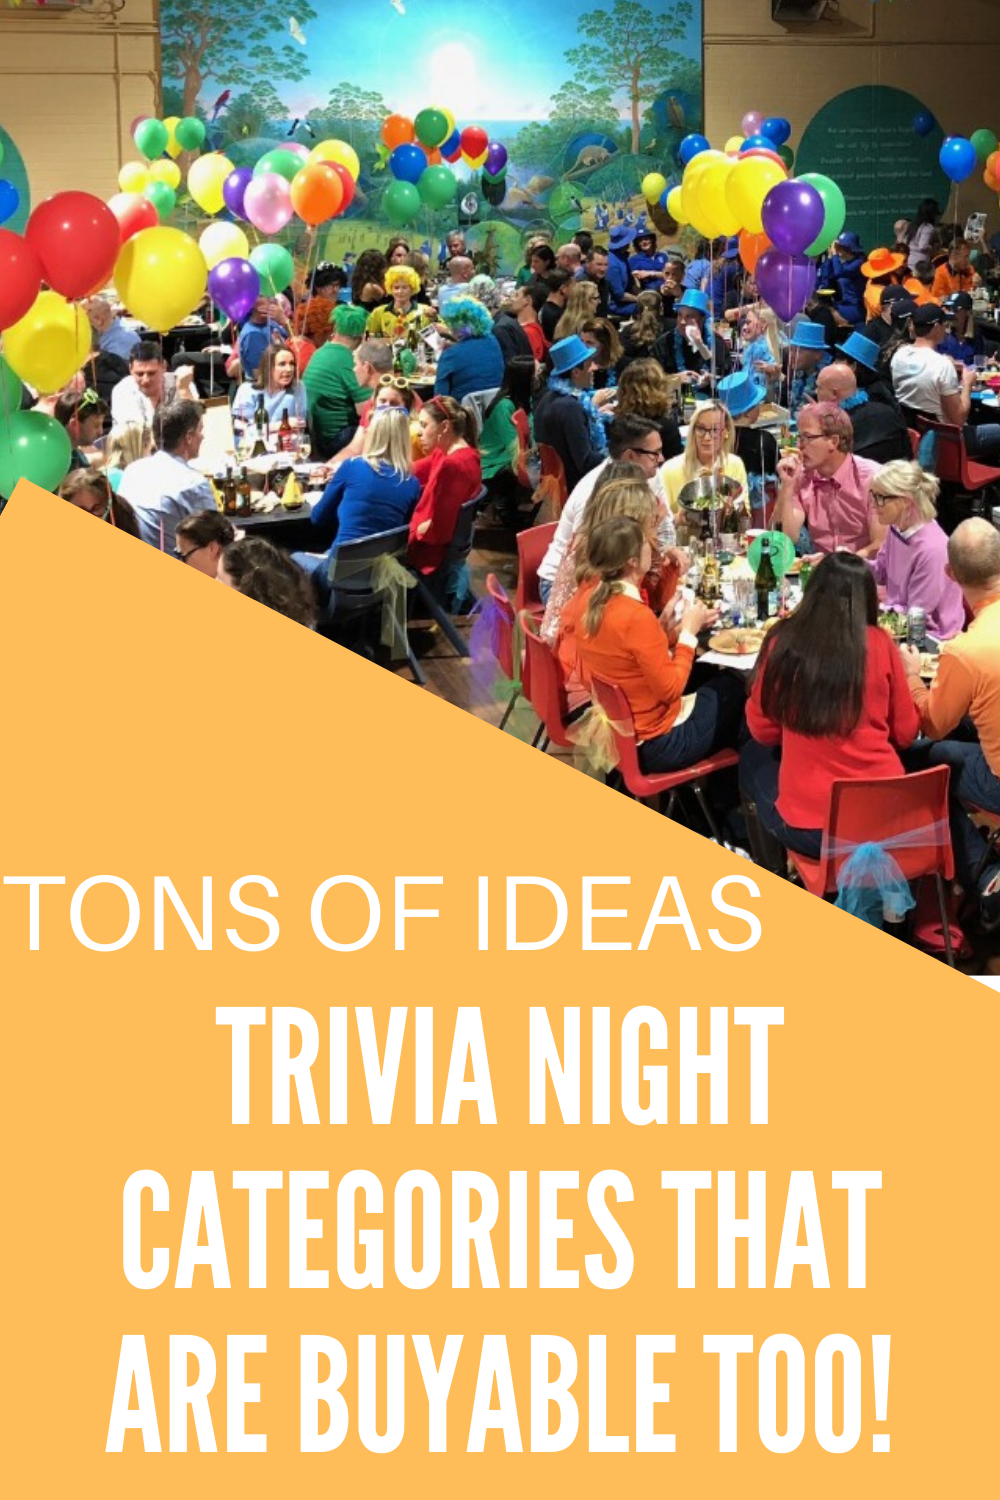 Fun categories for trivia night